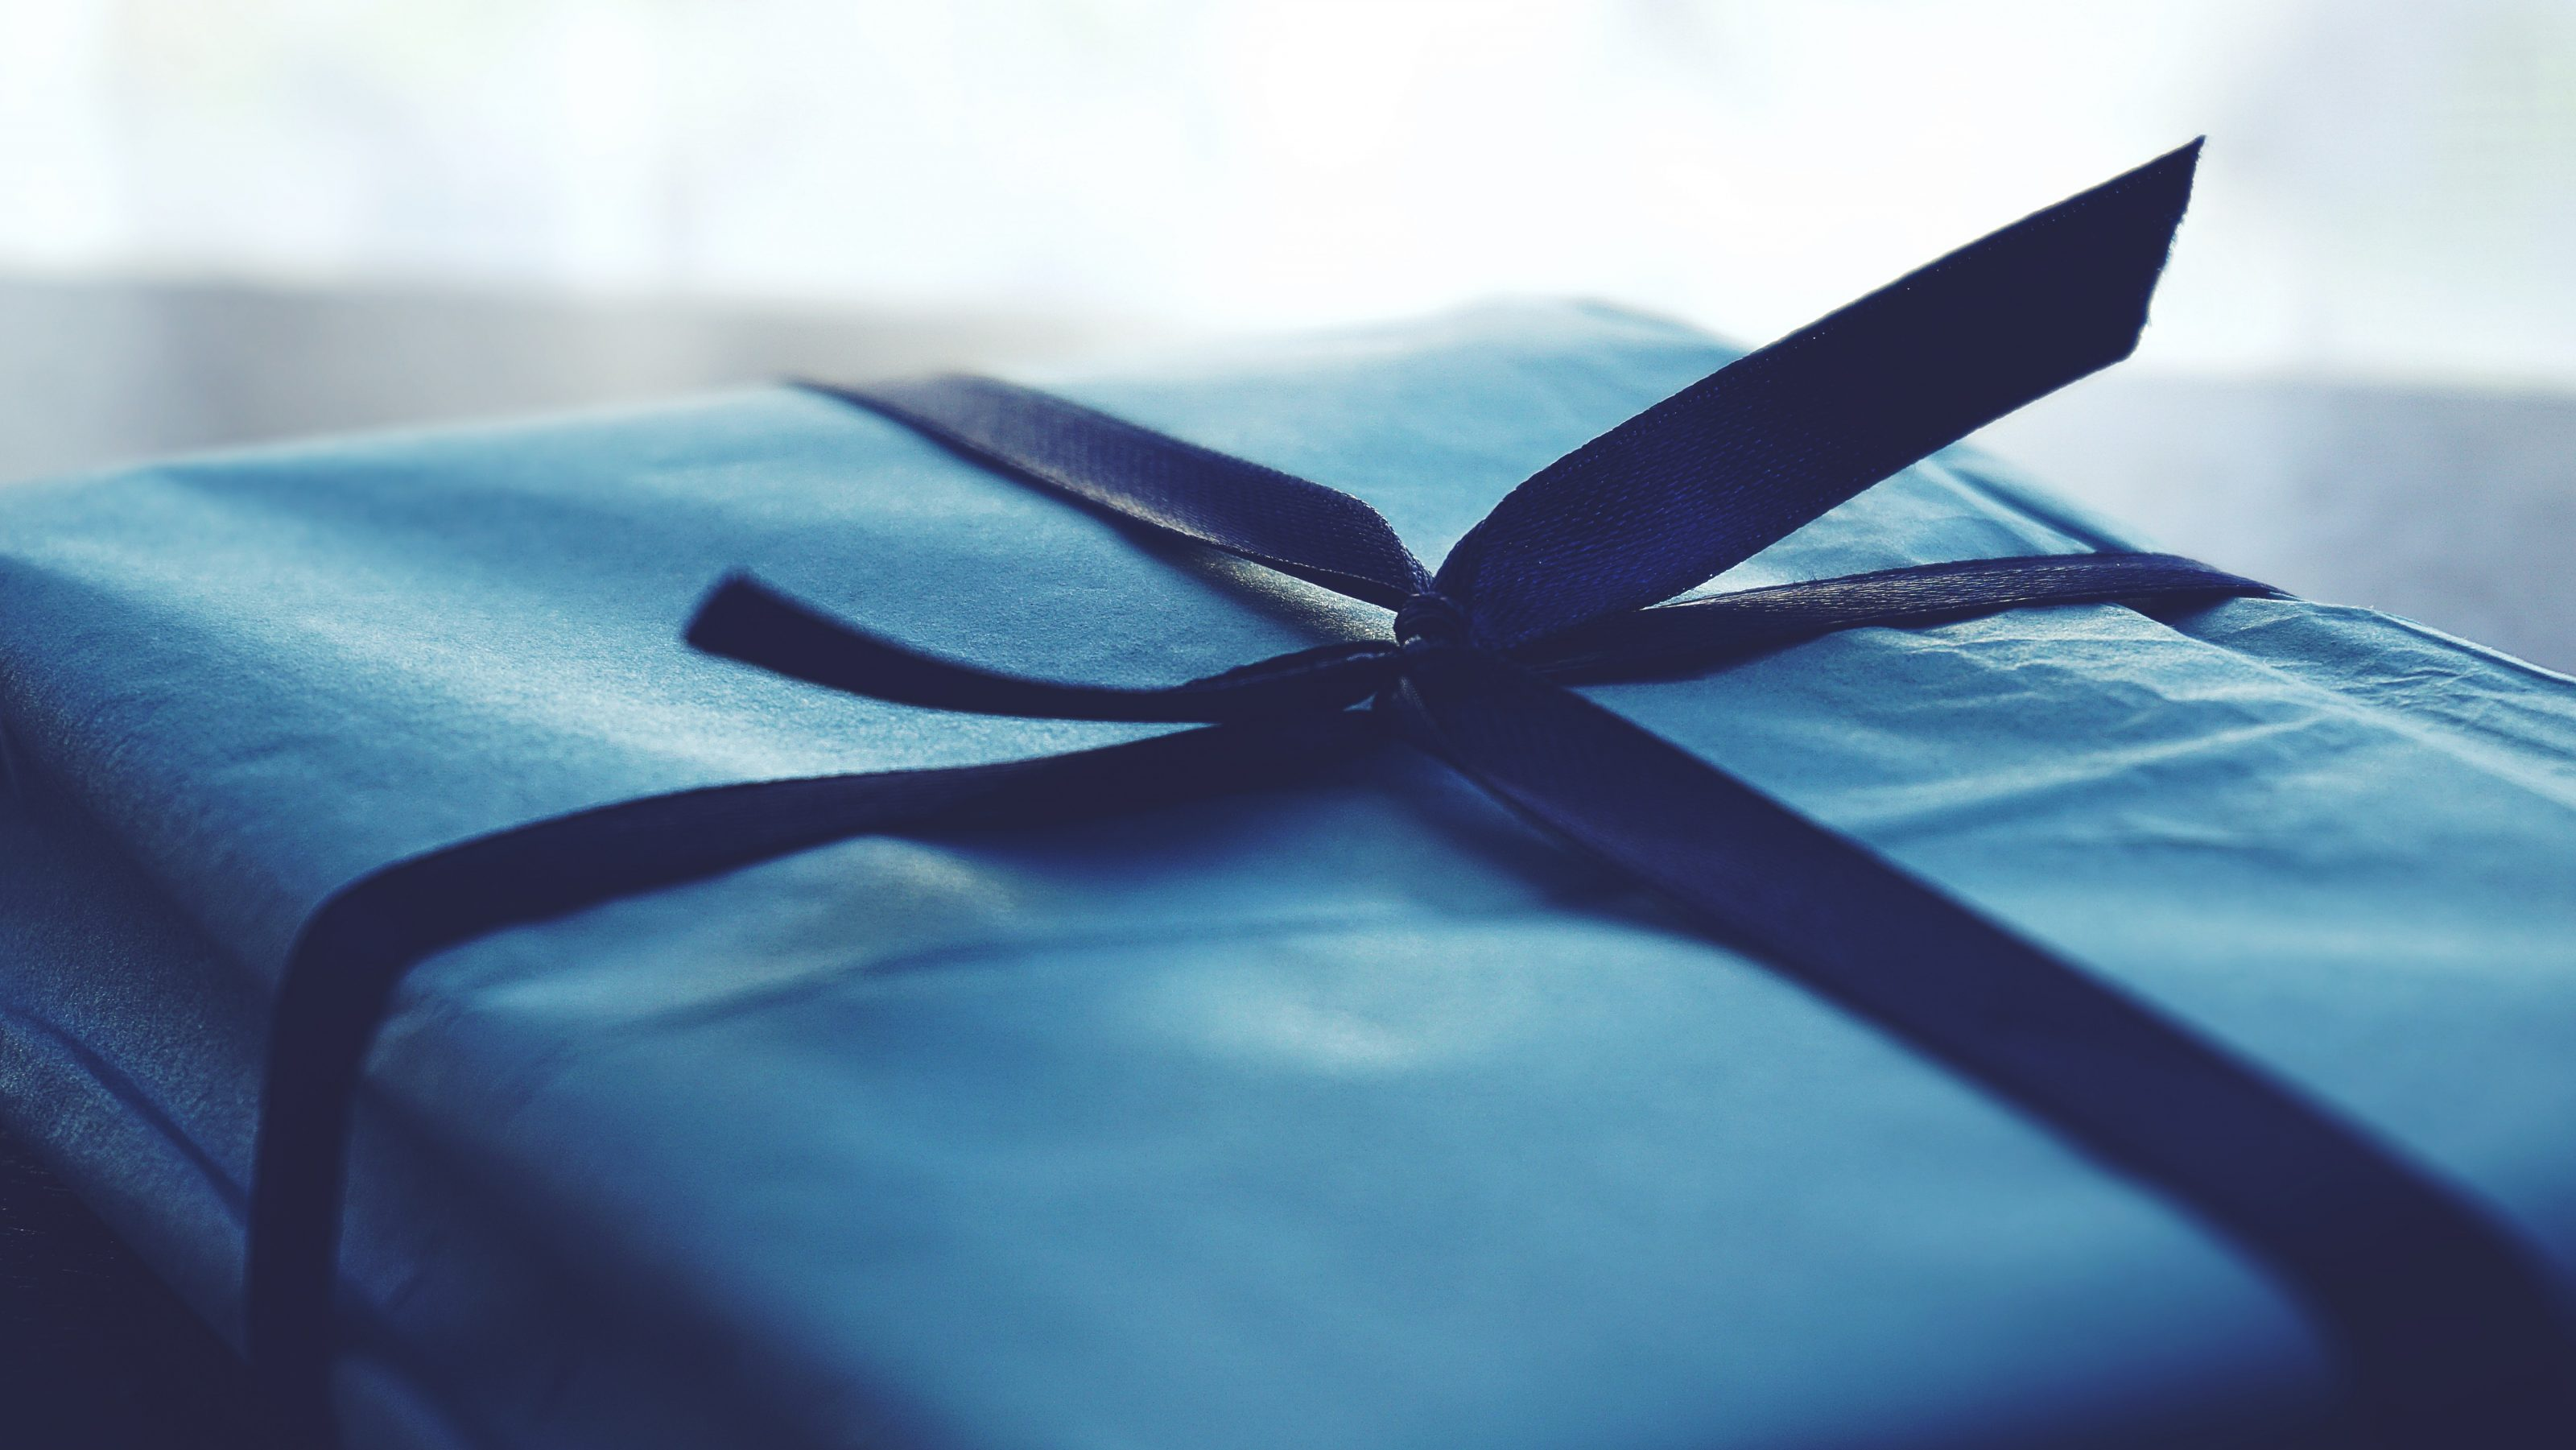 close-up-photo-of-tied-blue-box-1178562